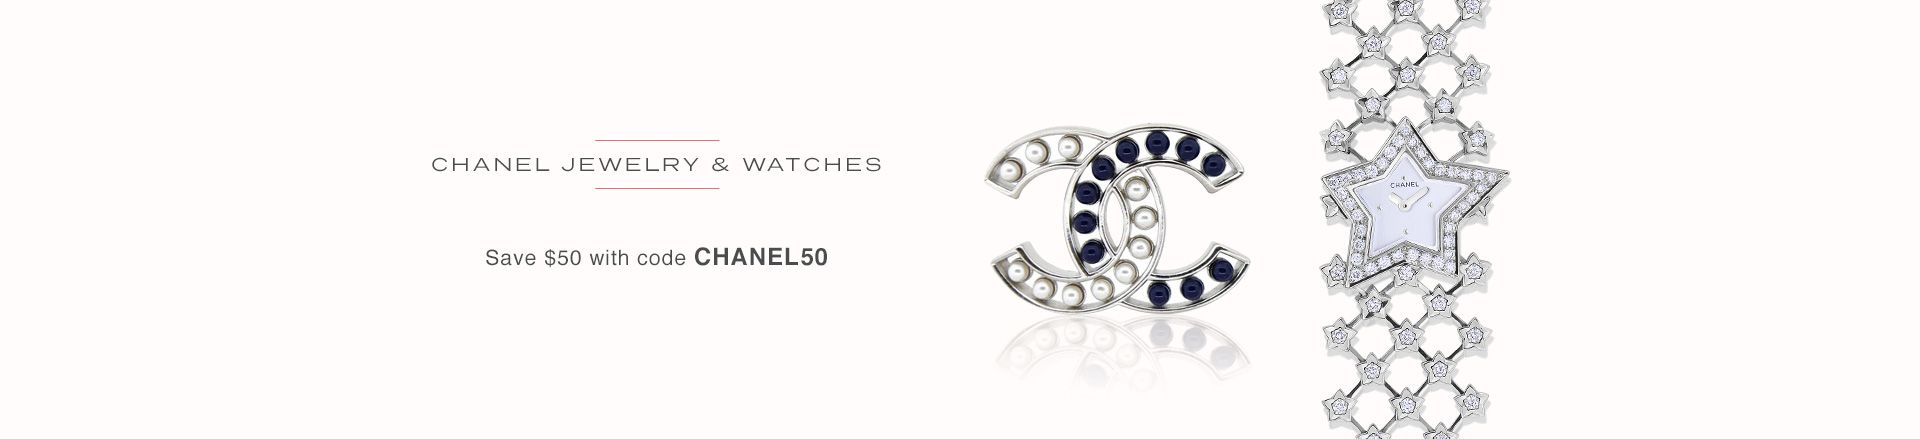 Chanel Jewelry and Watches